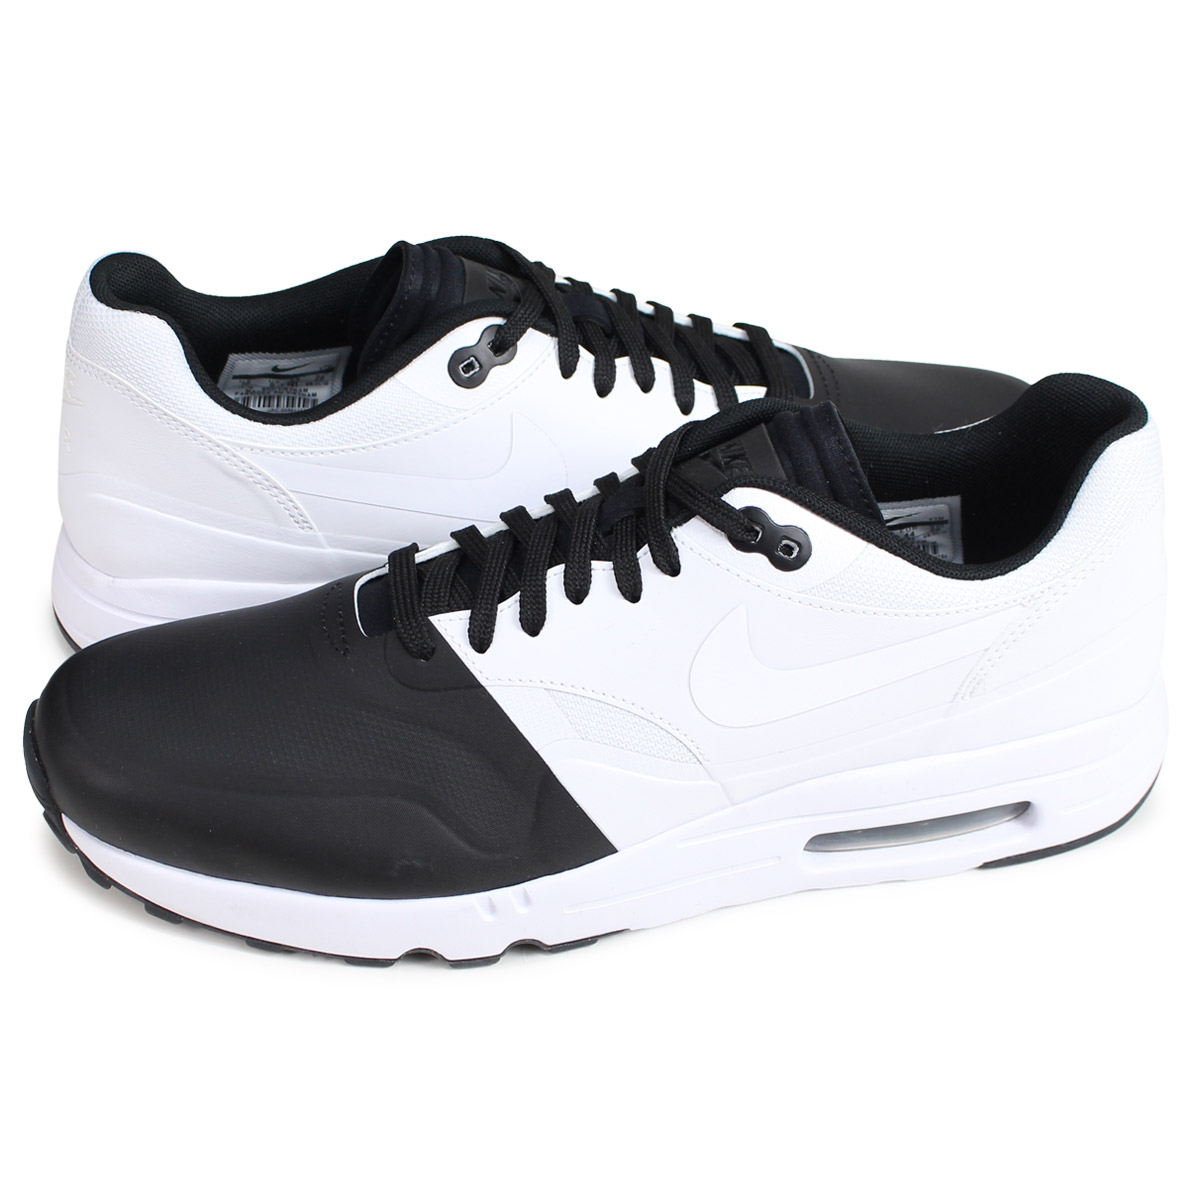 check out 6f016 ce4e9 Nike NIKE Air Max 1 sneakers men AIR MAX 1 ULTRA 2.0 SE black 875,845- ...